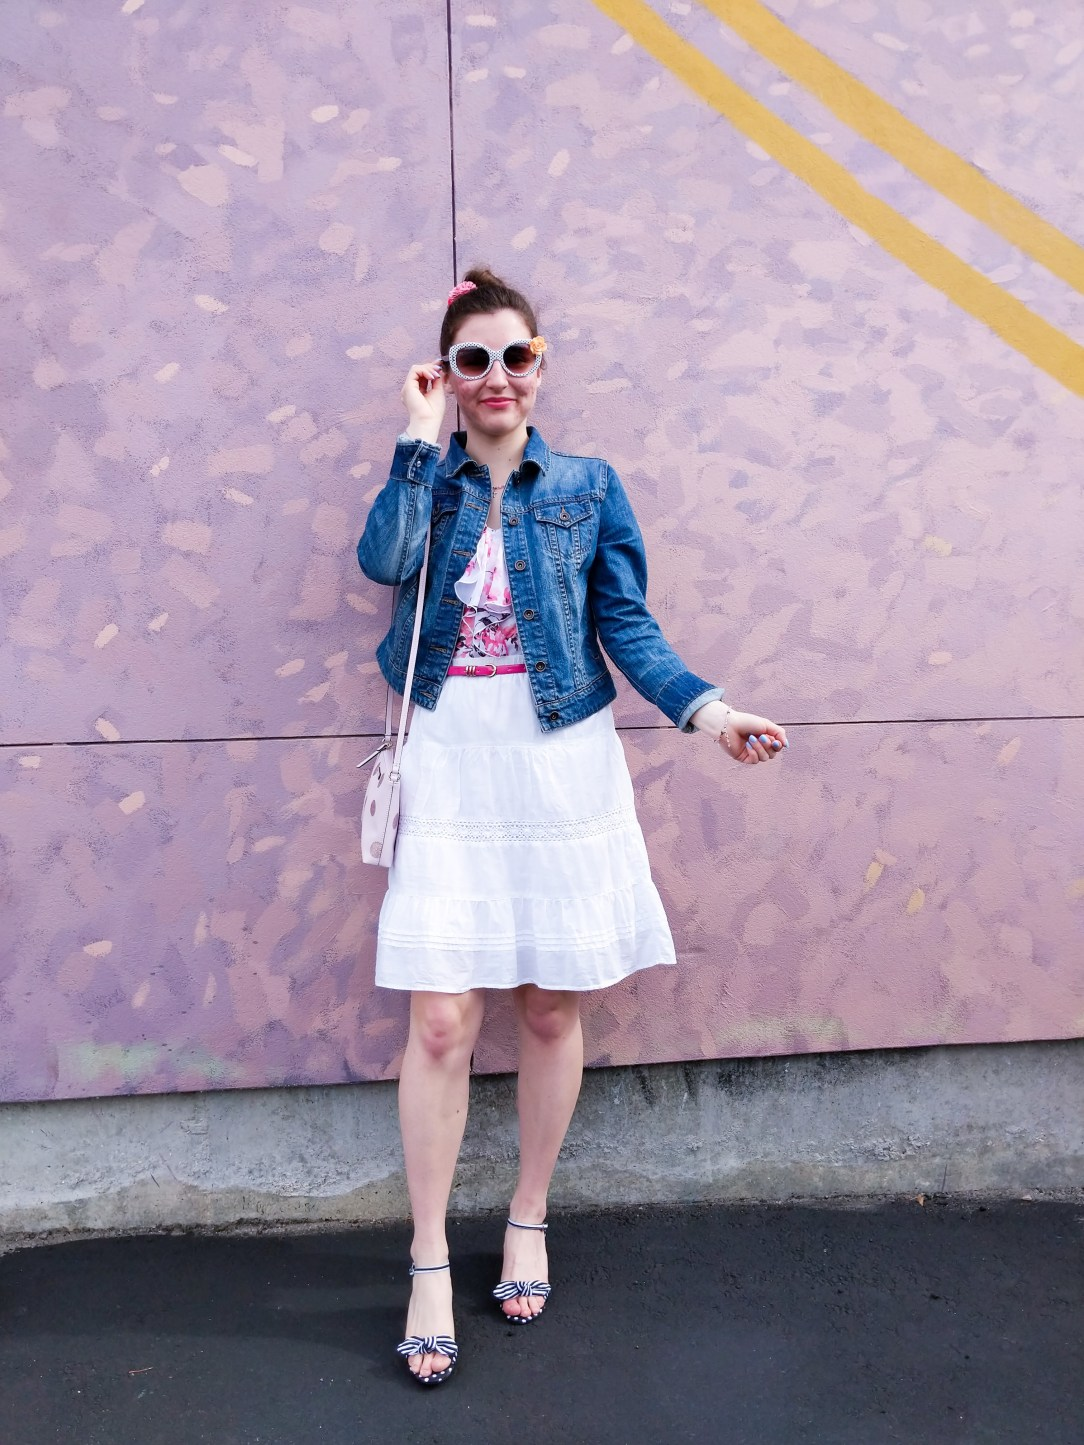 jean jacket, floral blouse, white skirt, striped bow shoes